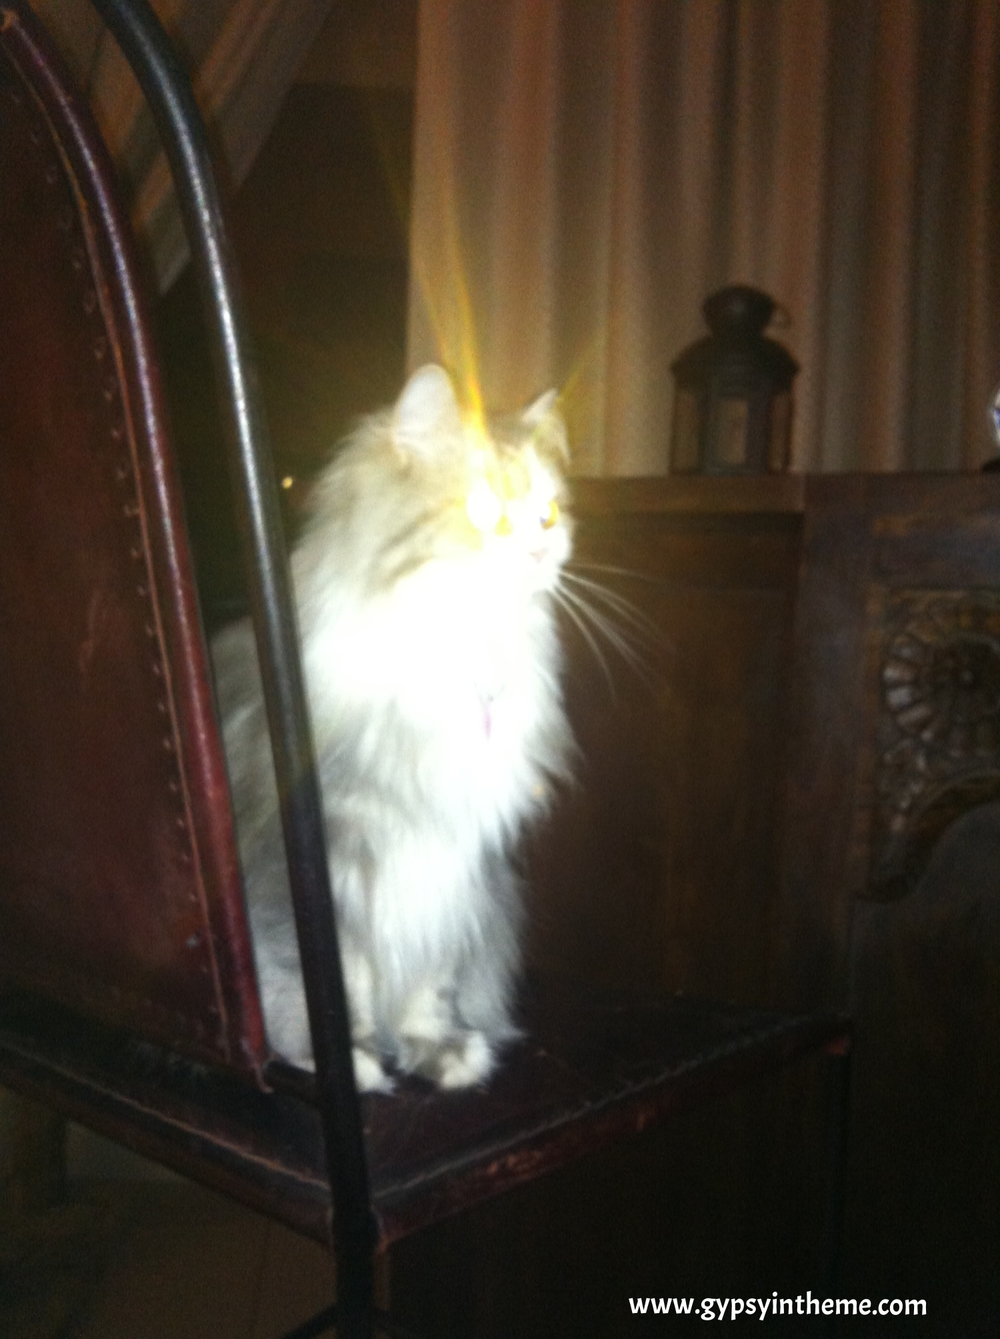 If Bar Cat's halo doesn't inspire, what in the world will?